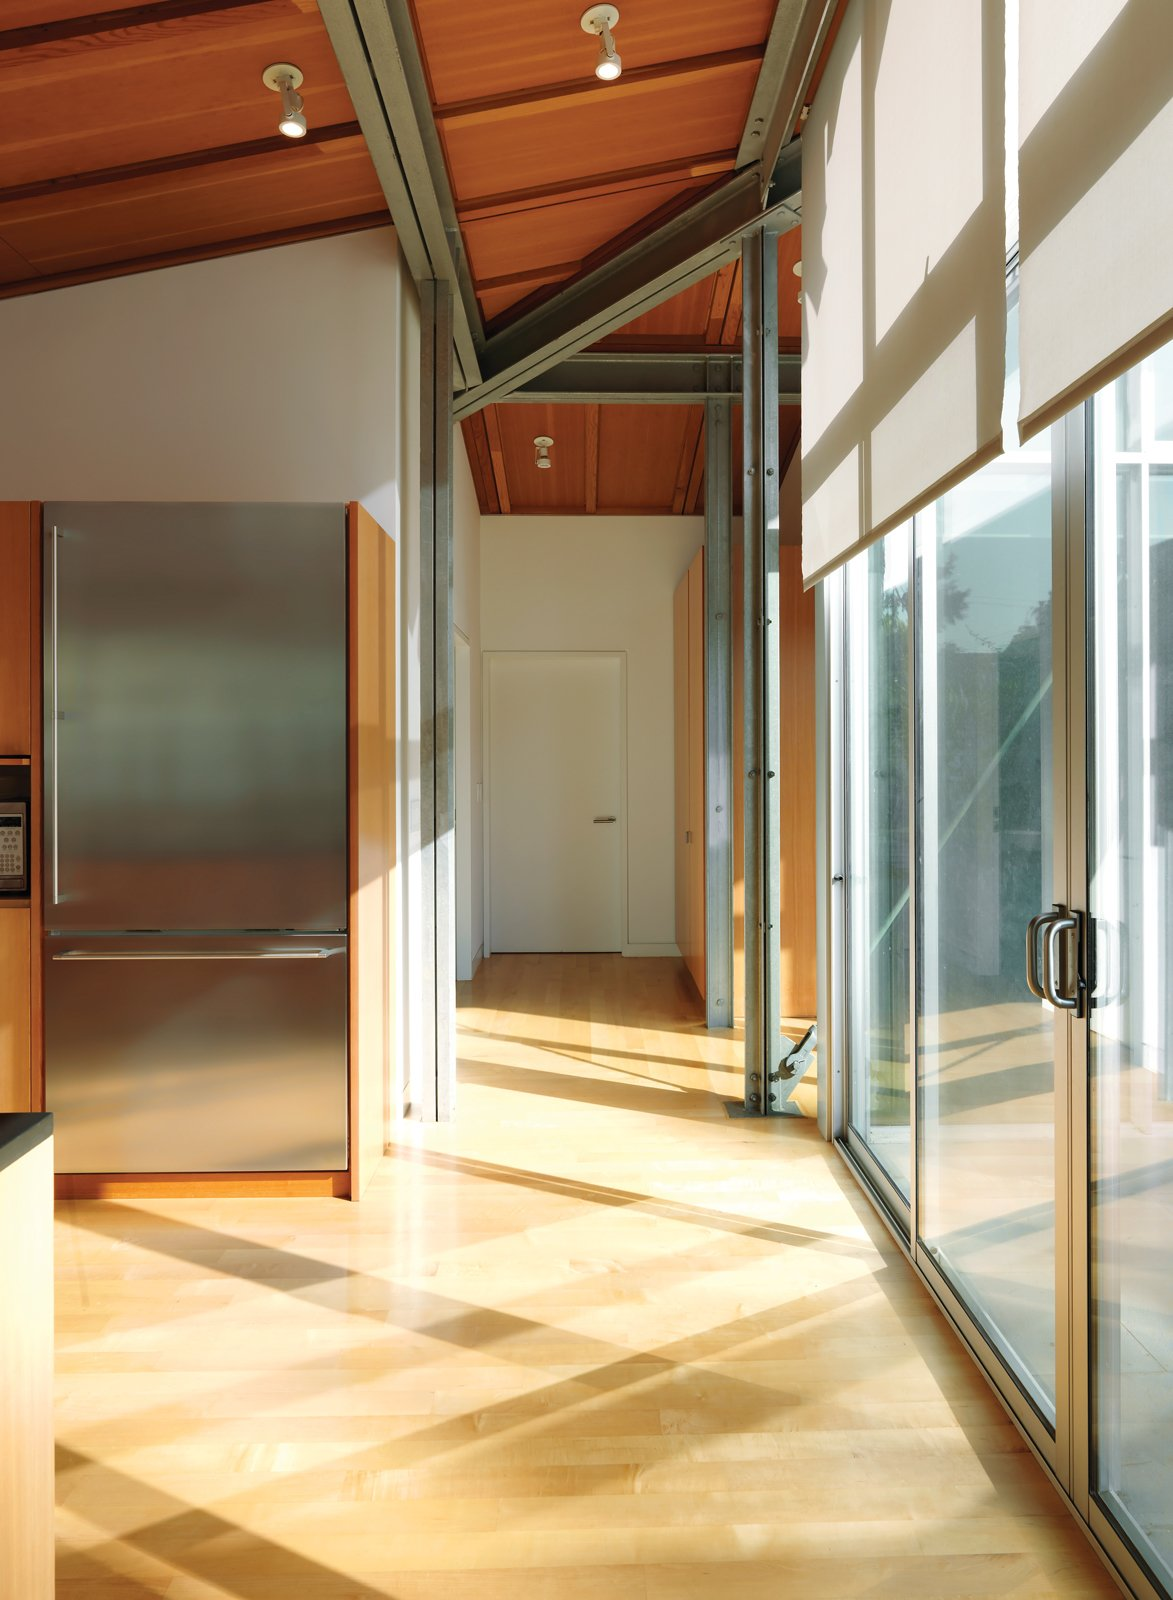 Kitchen, Refrigerator, and Wood Cabinet The architecture mixes Douglas fir beams and exposed steel framing, achieving its soaring spaces without pretentiousness.  Photo 5 of 16 in Family Matters